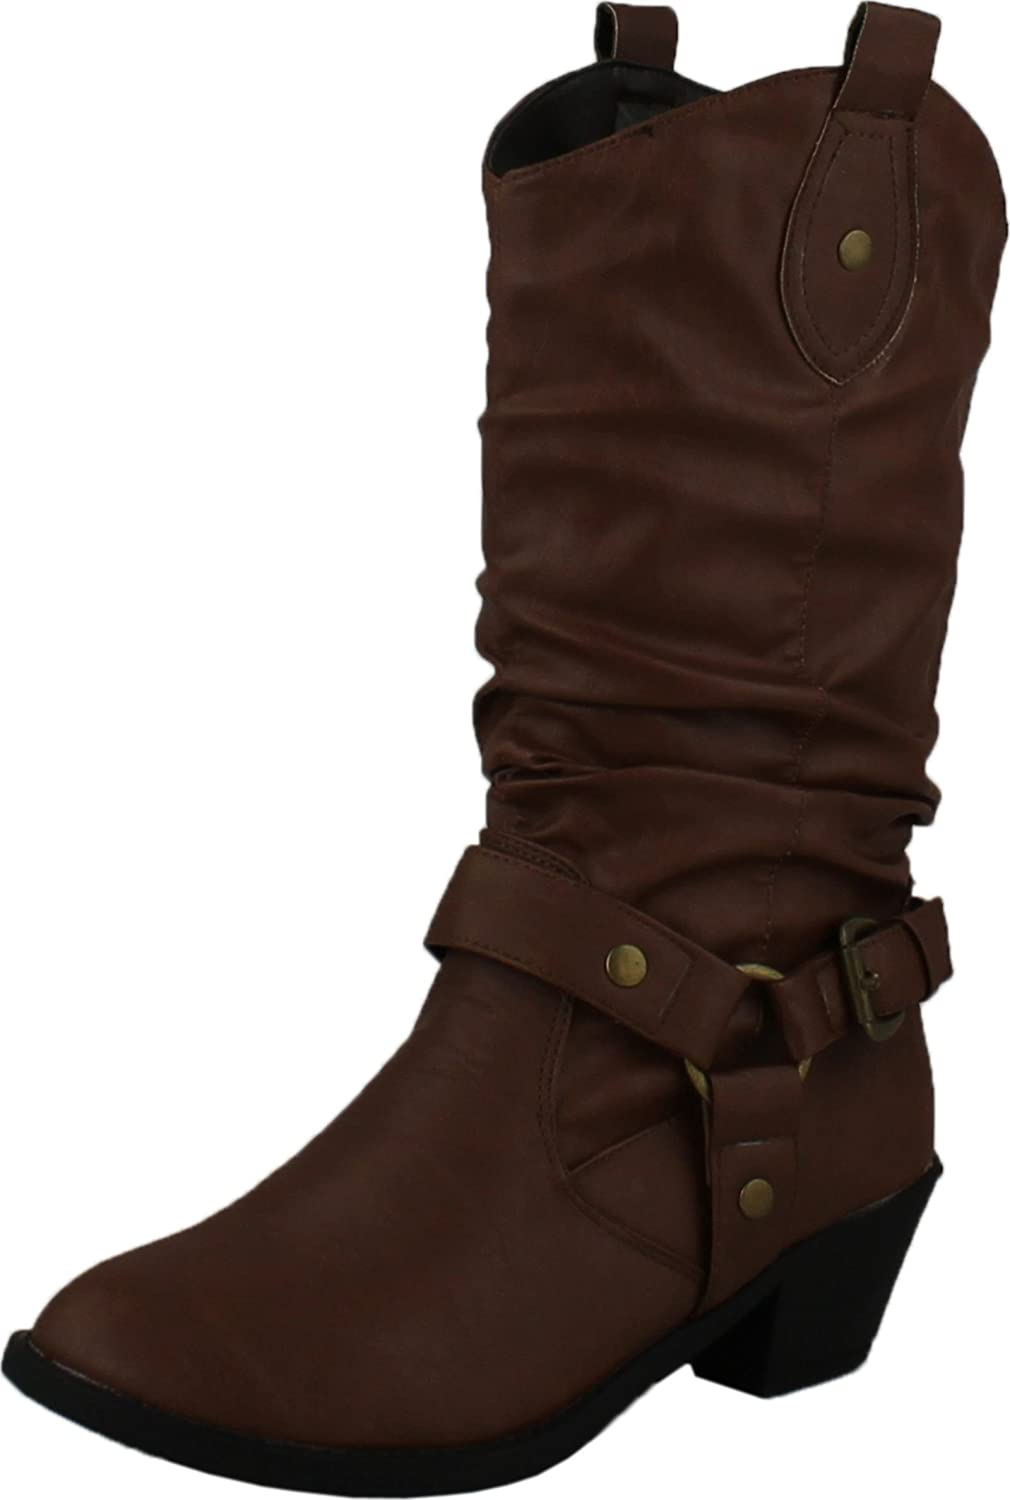 Lolli Couture Karyn's Collection Womens Dale Western Cowboy Boots,Brown-Dale,5.5